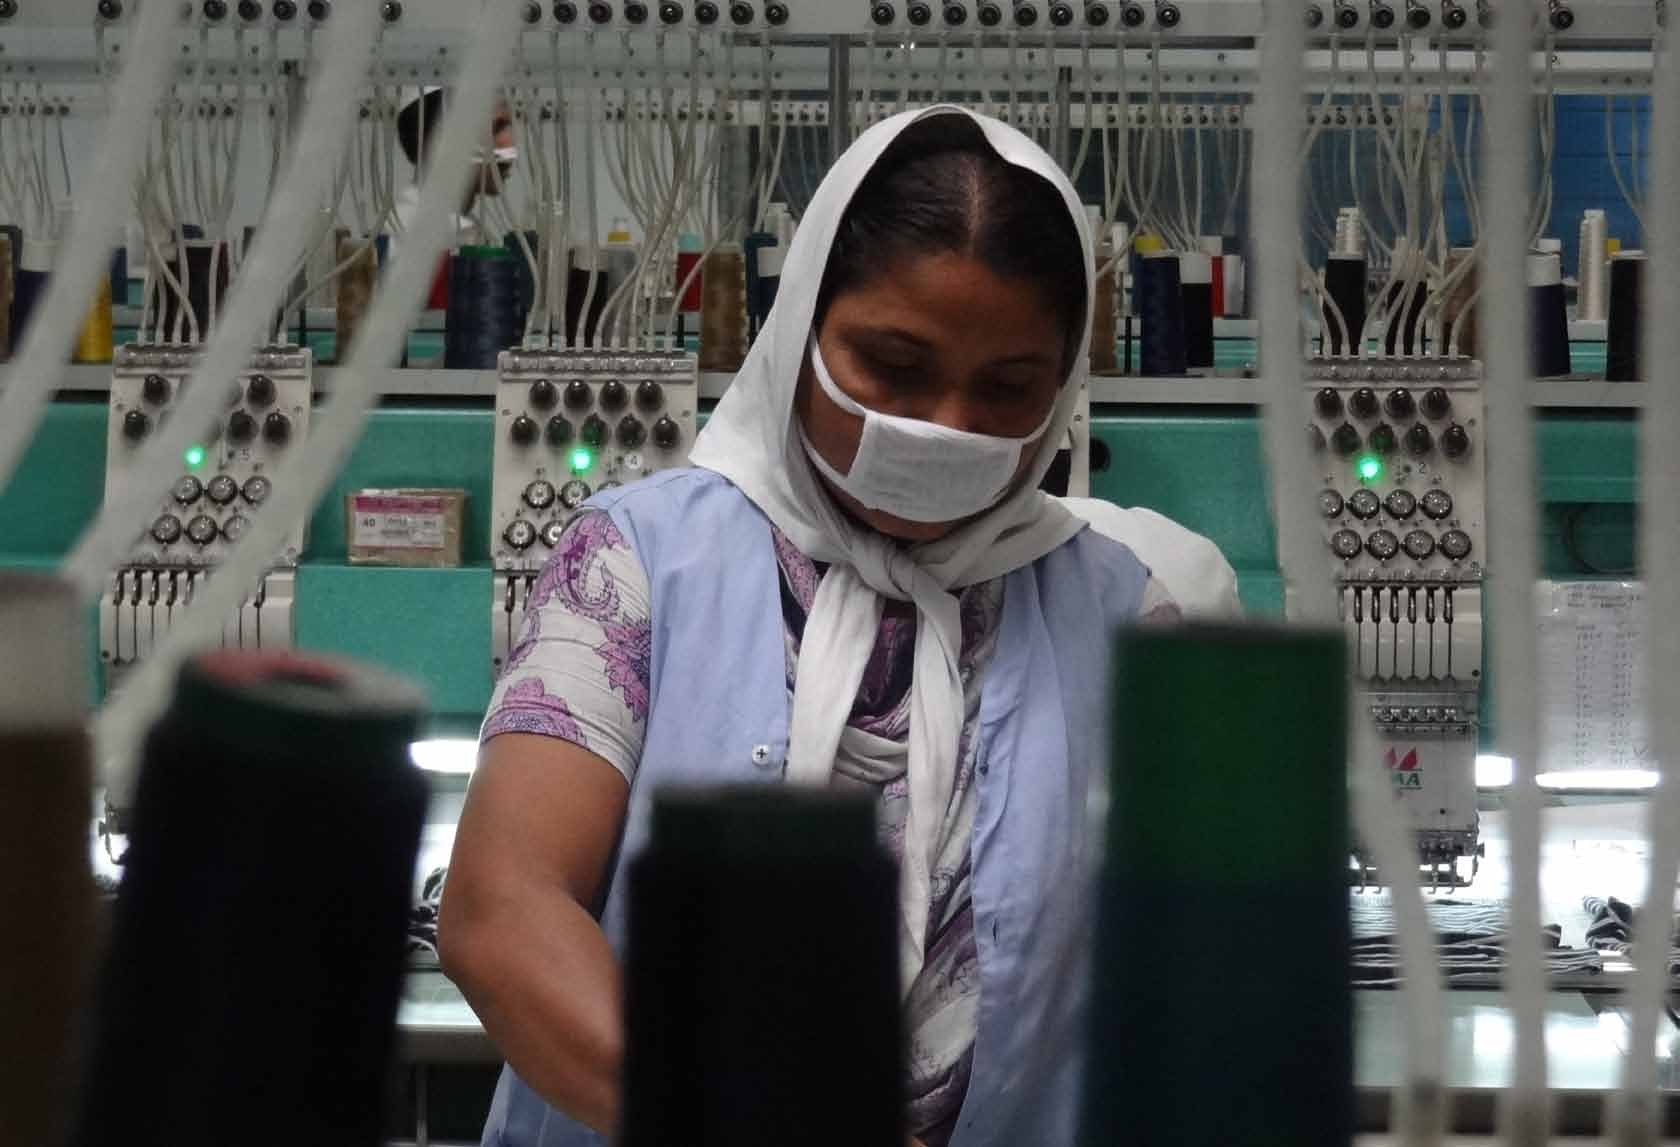 BISHAWJIT DAS Access to capital has allowed the largest factory groups to upgrade to higher value-added production such as machine stitched embroidery.